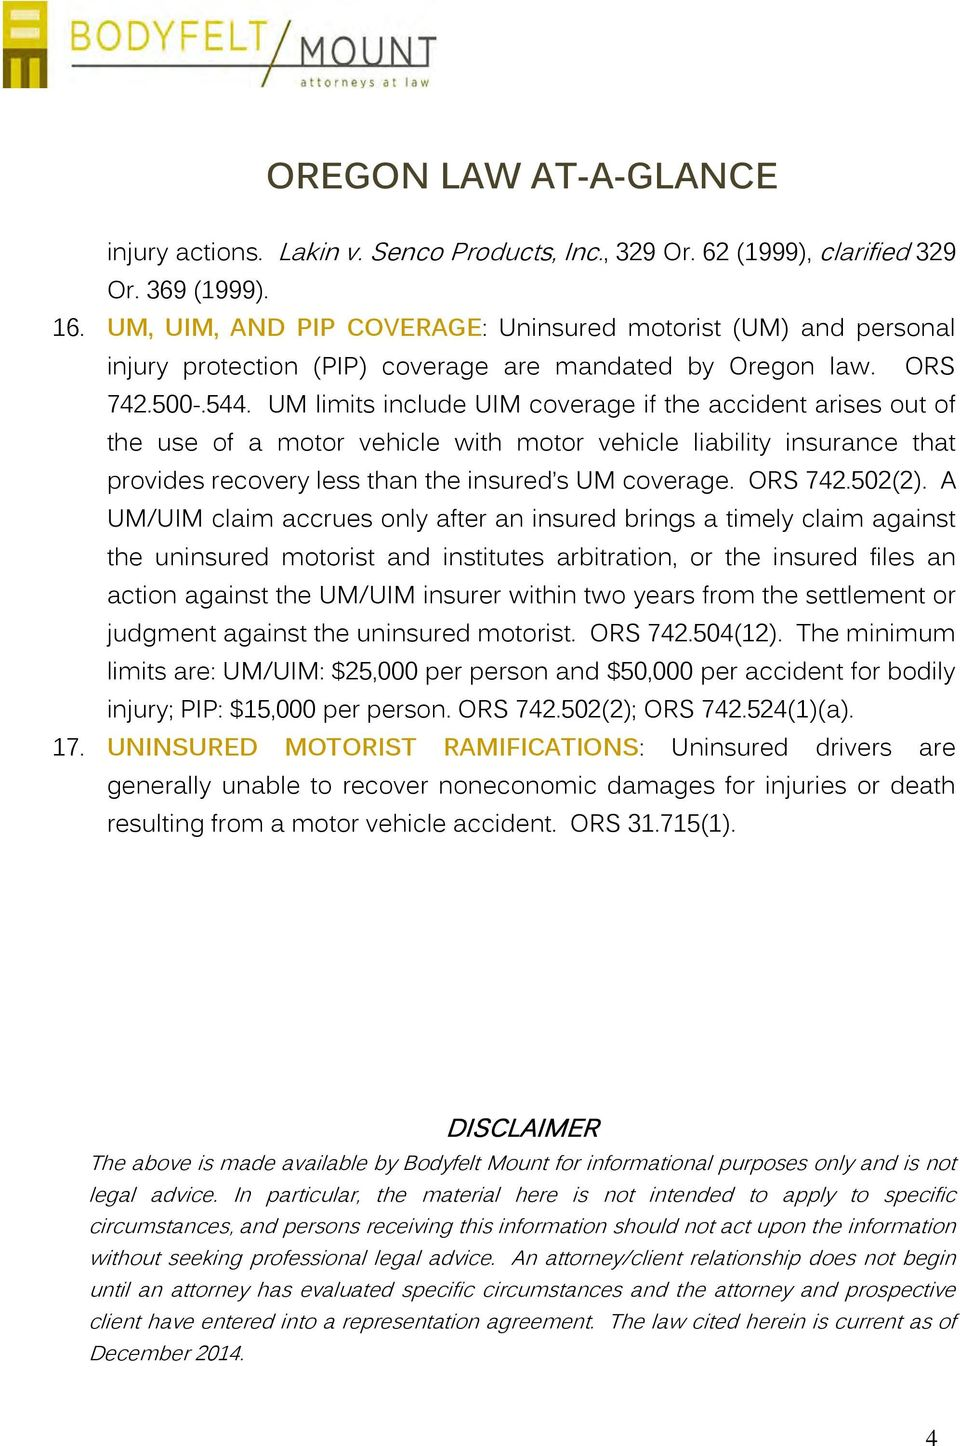 UM limits include UIM coverage if the accident arises out of the use of a motor vehicle with motor vehicle liability insurance that provides recovery less than the insured s UM coverage. ORS 742.